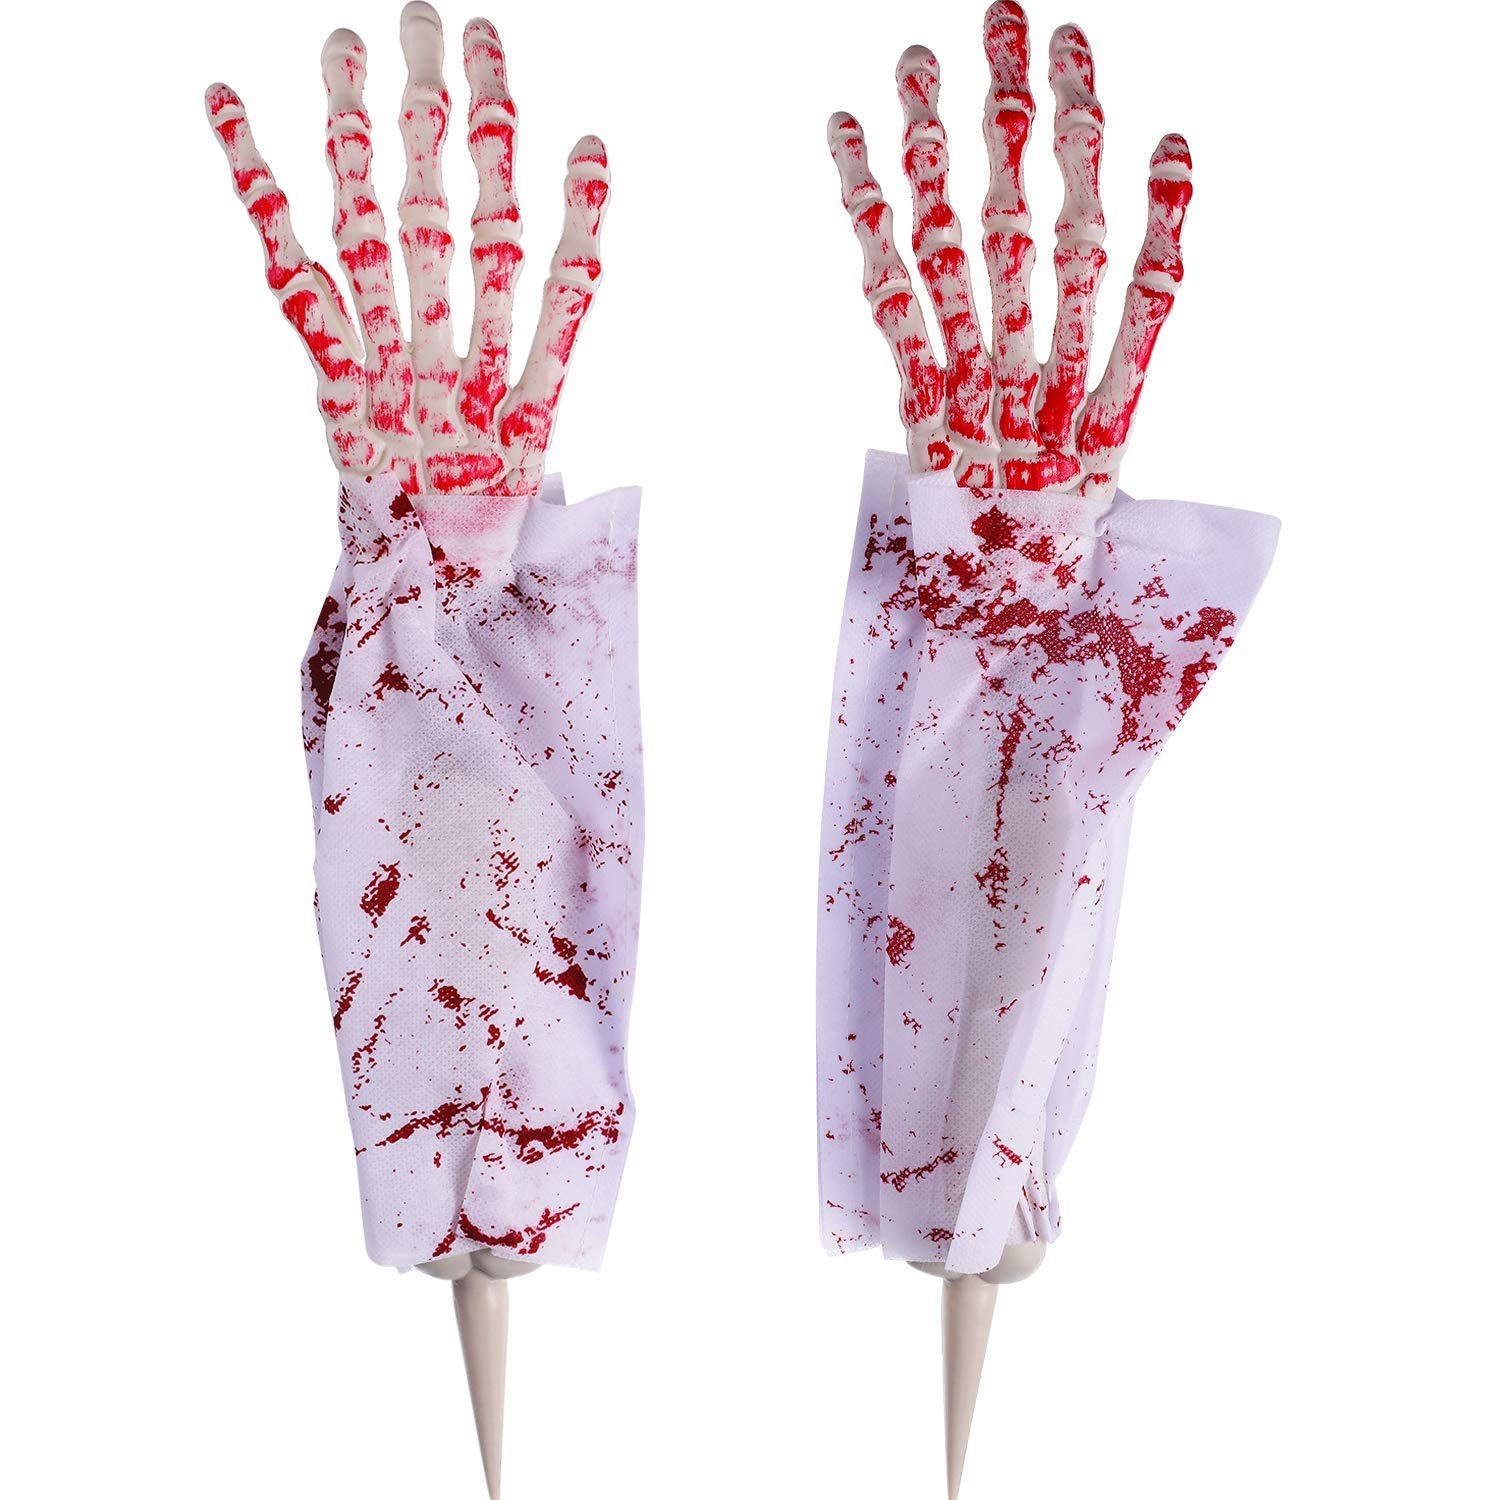 Boao Halloween Zombie Hands and Arms Zombie Lawn Stakes Bloody Fake Arms Hands for Halloween Party Supplies